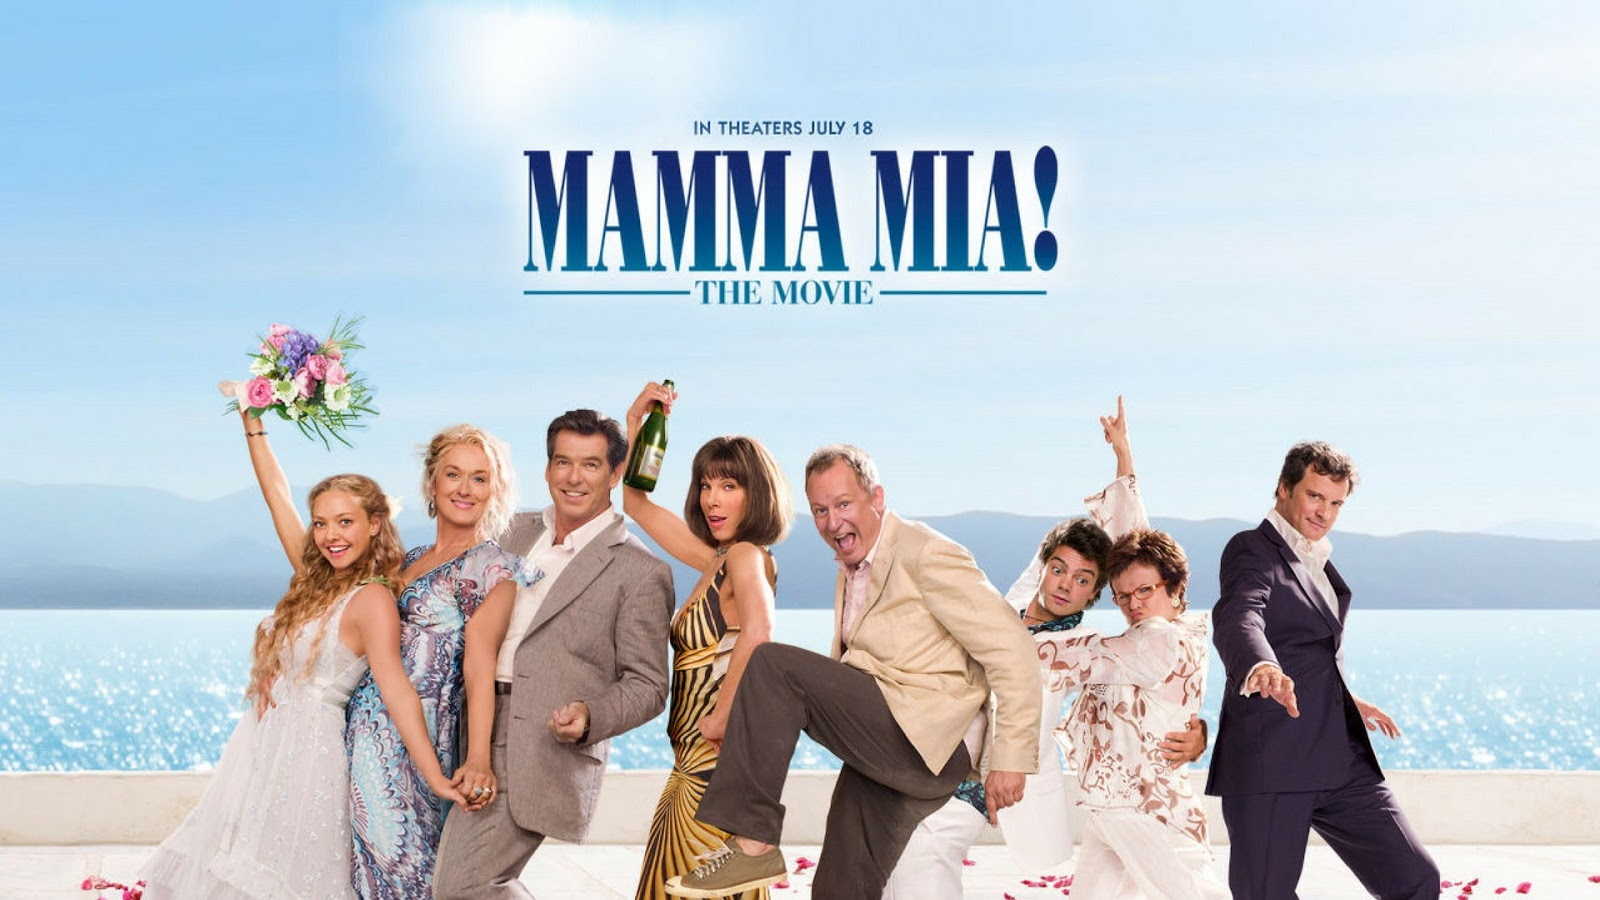 mamma mia, movies, musical, amanda seyfried, panasonic, greece